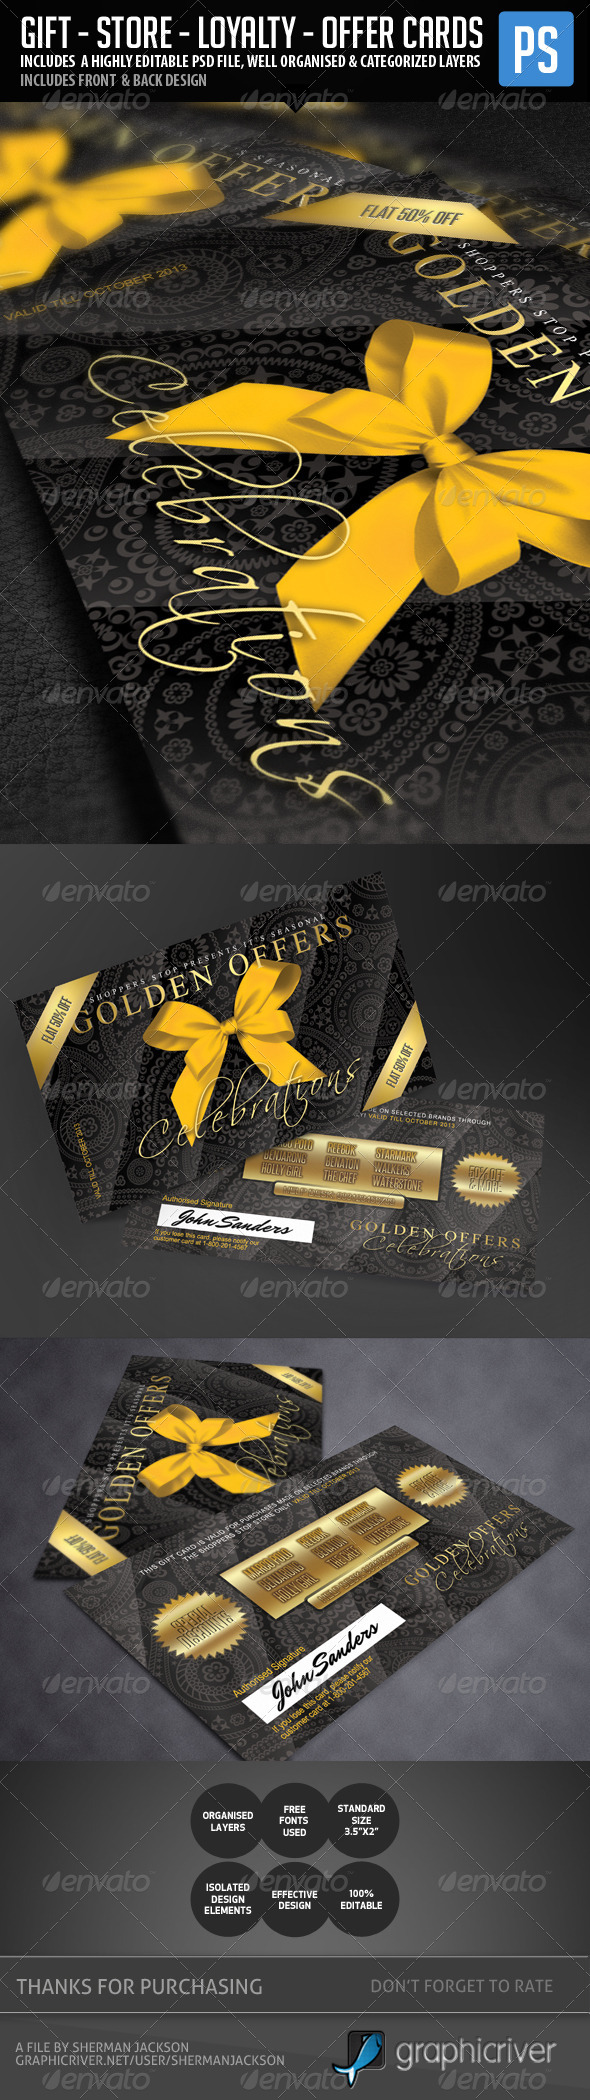 Gift Card, Store, Loyalty Card Template - Loyalty Cards Cards & Invites